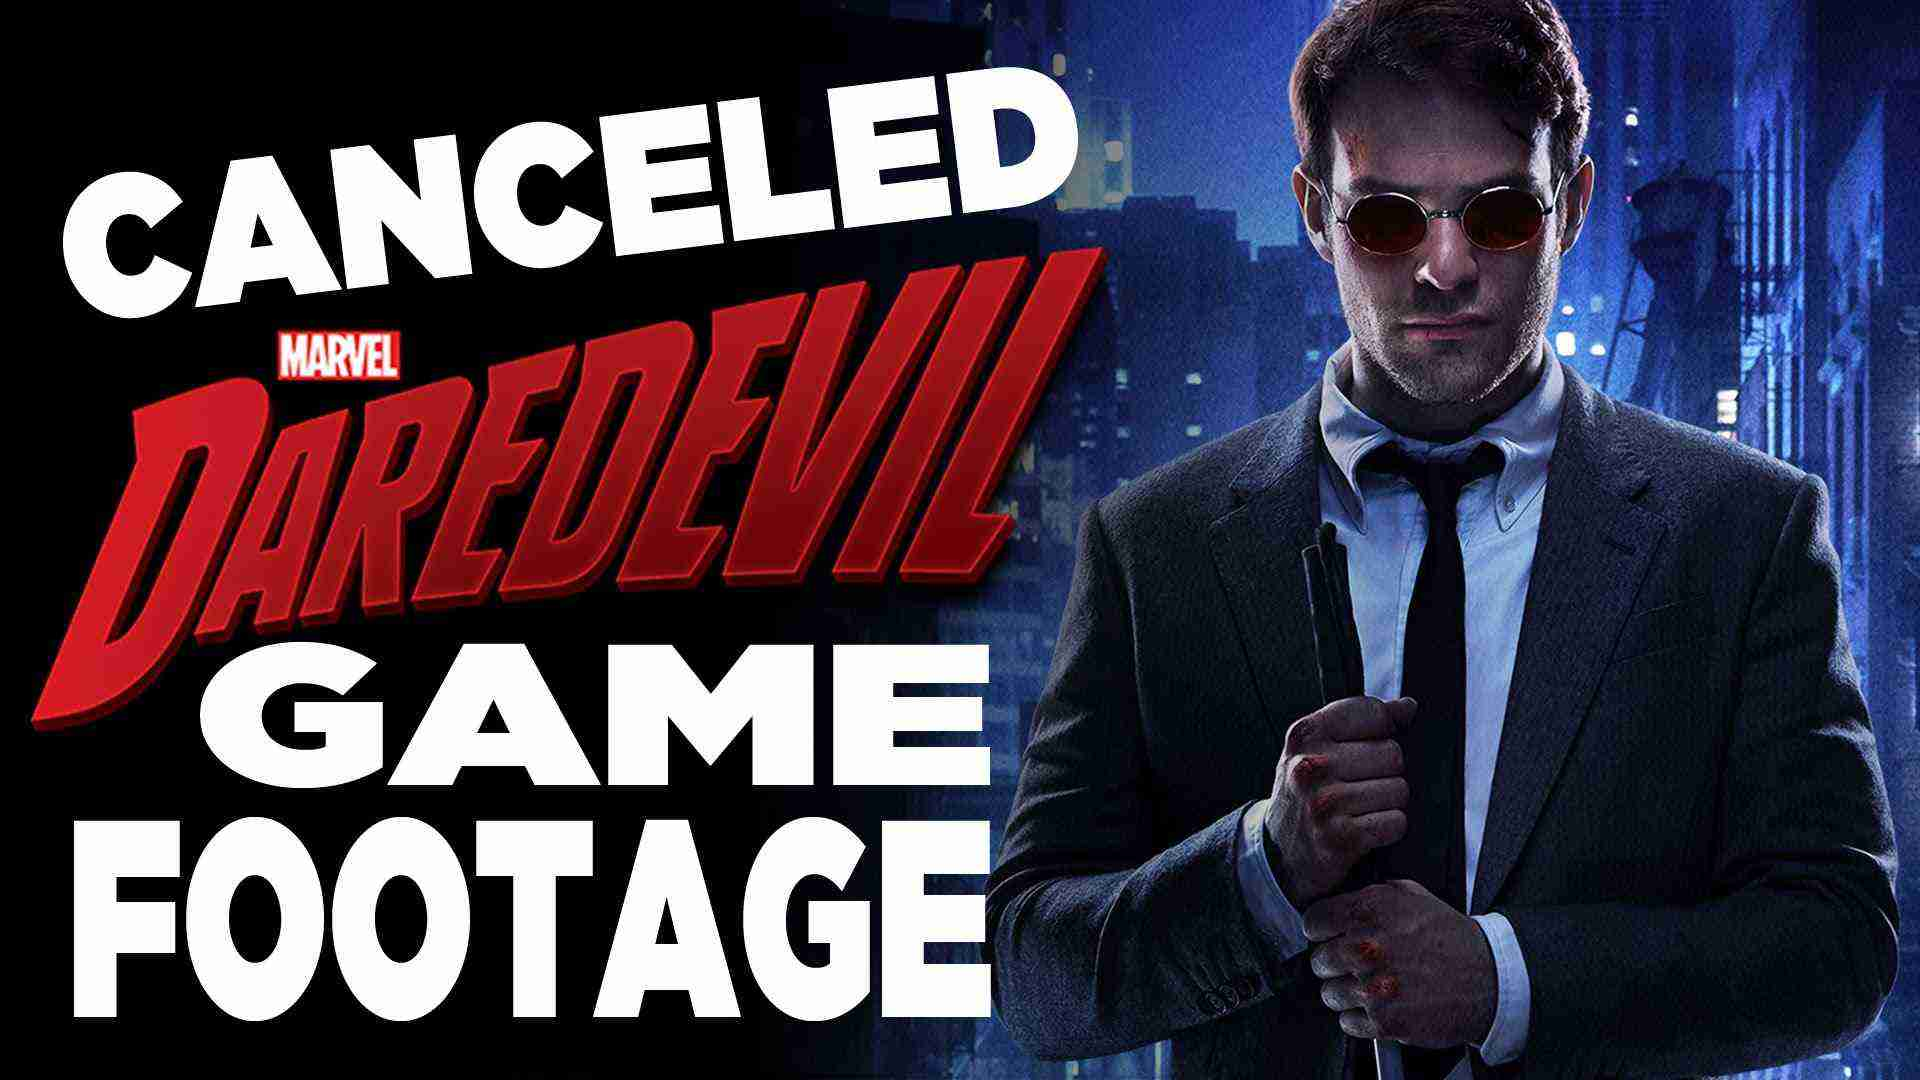 Canceled Daredevil Game Footage – Inside Gaming Daily